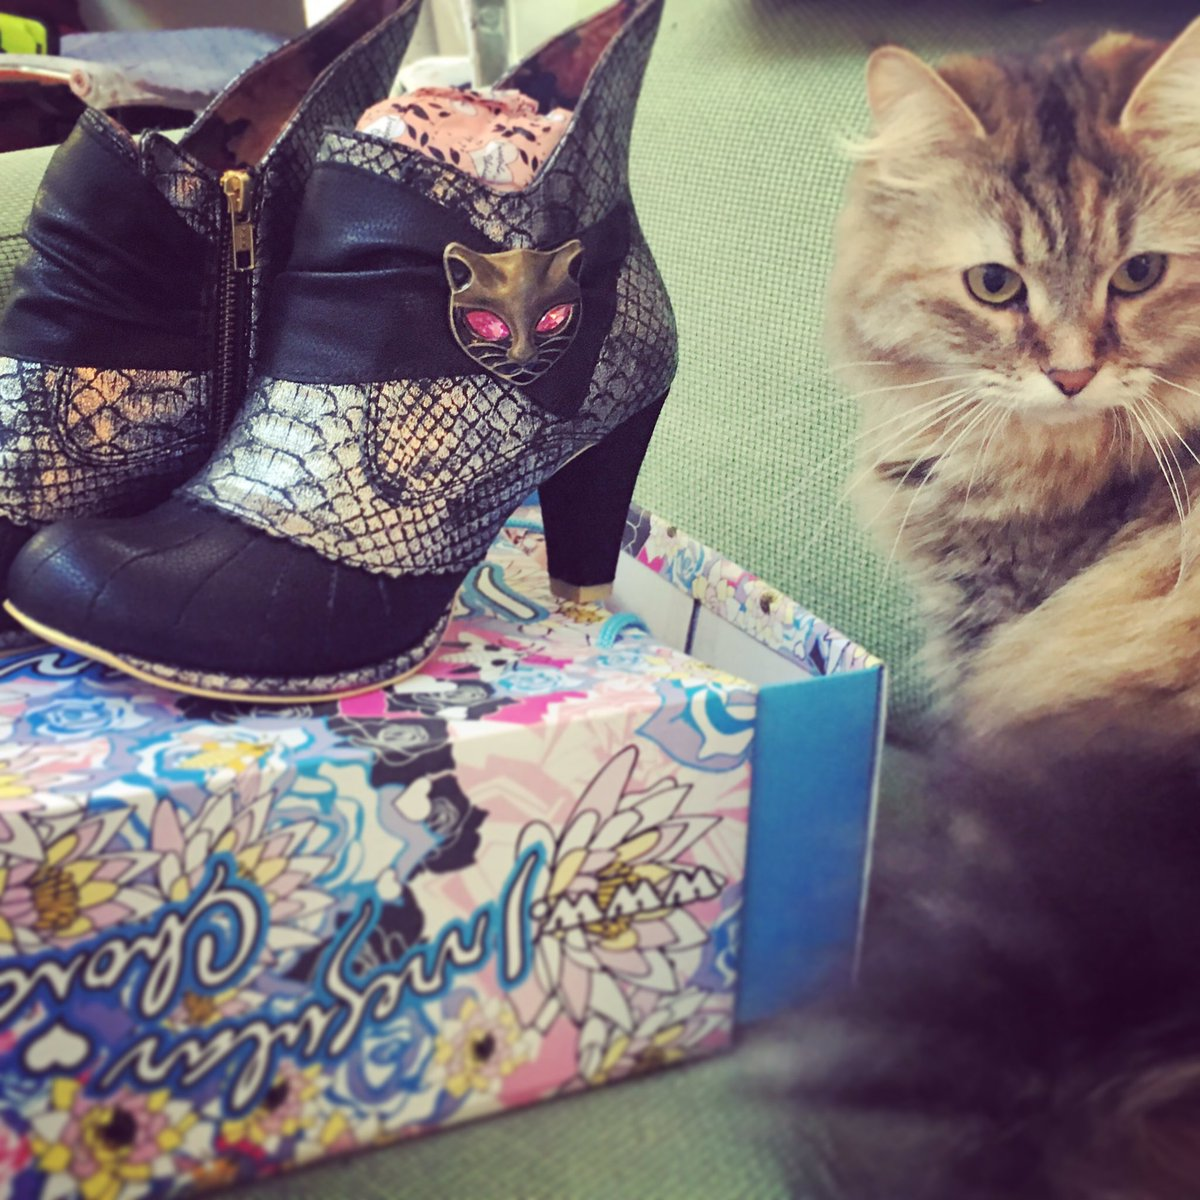 Bobbin has already befriended my new Miaow Boots from Irregular Choice! @IrregularChoice #cats #shoes